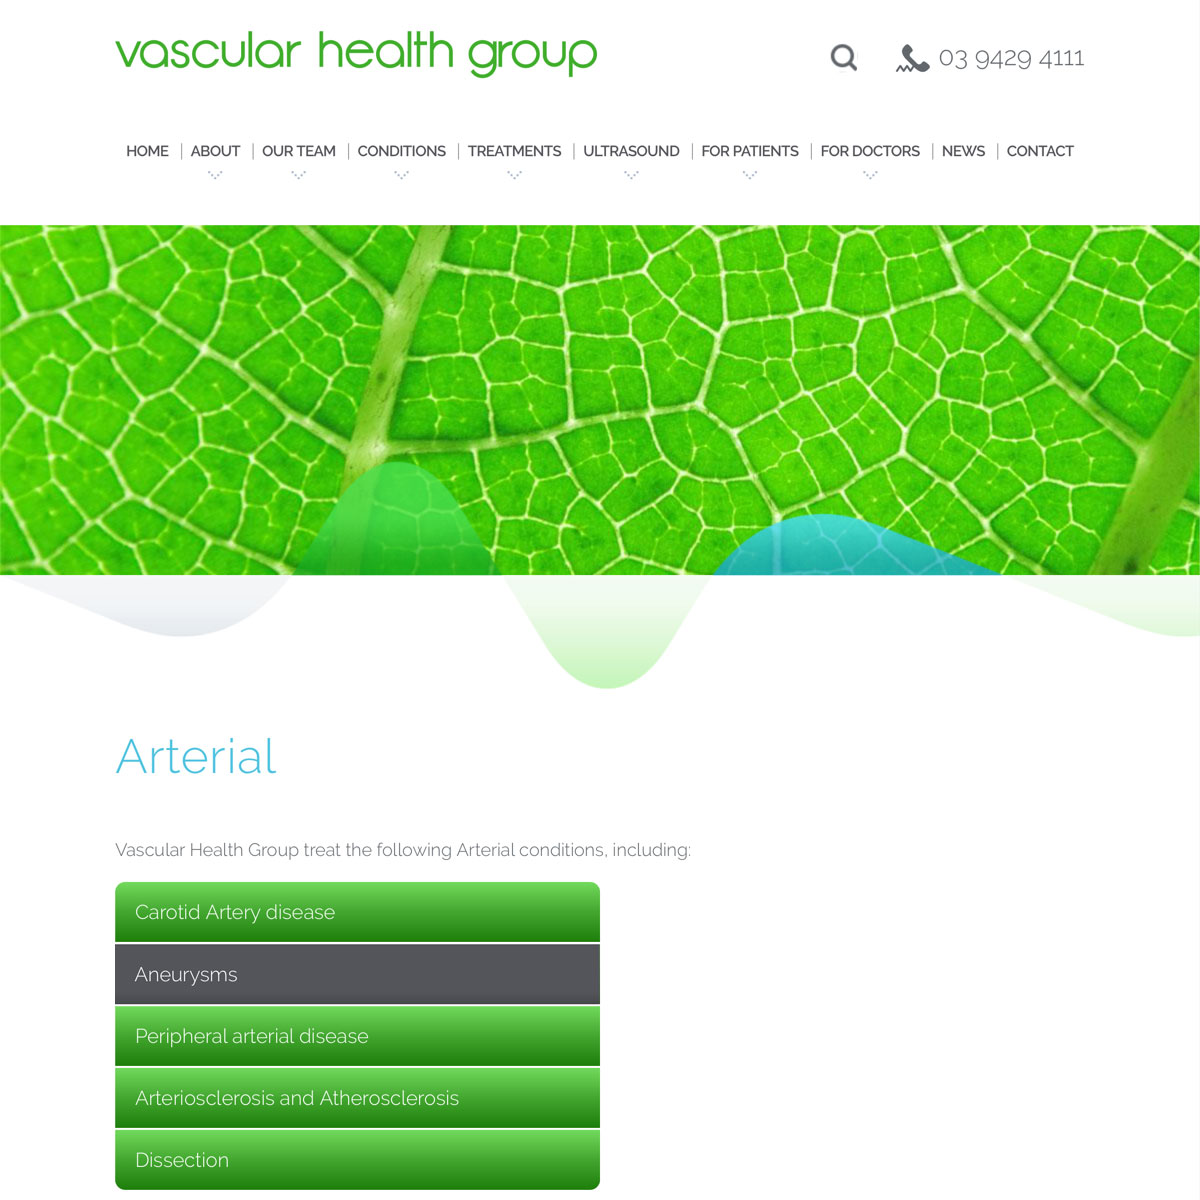 Vascular Health Group - Conditions Index